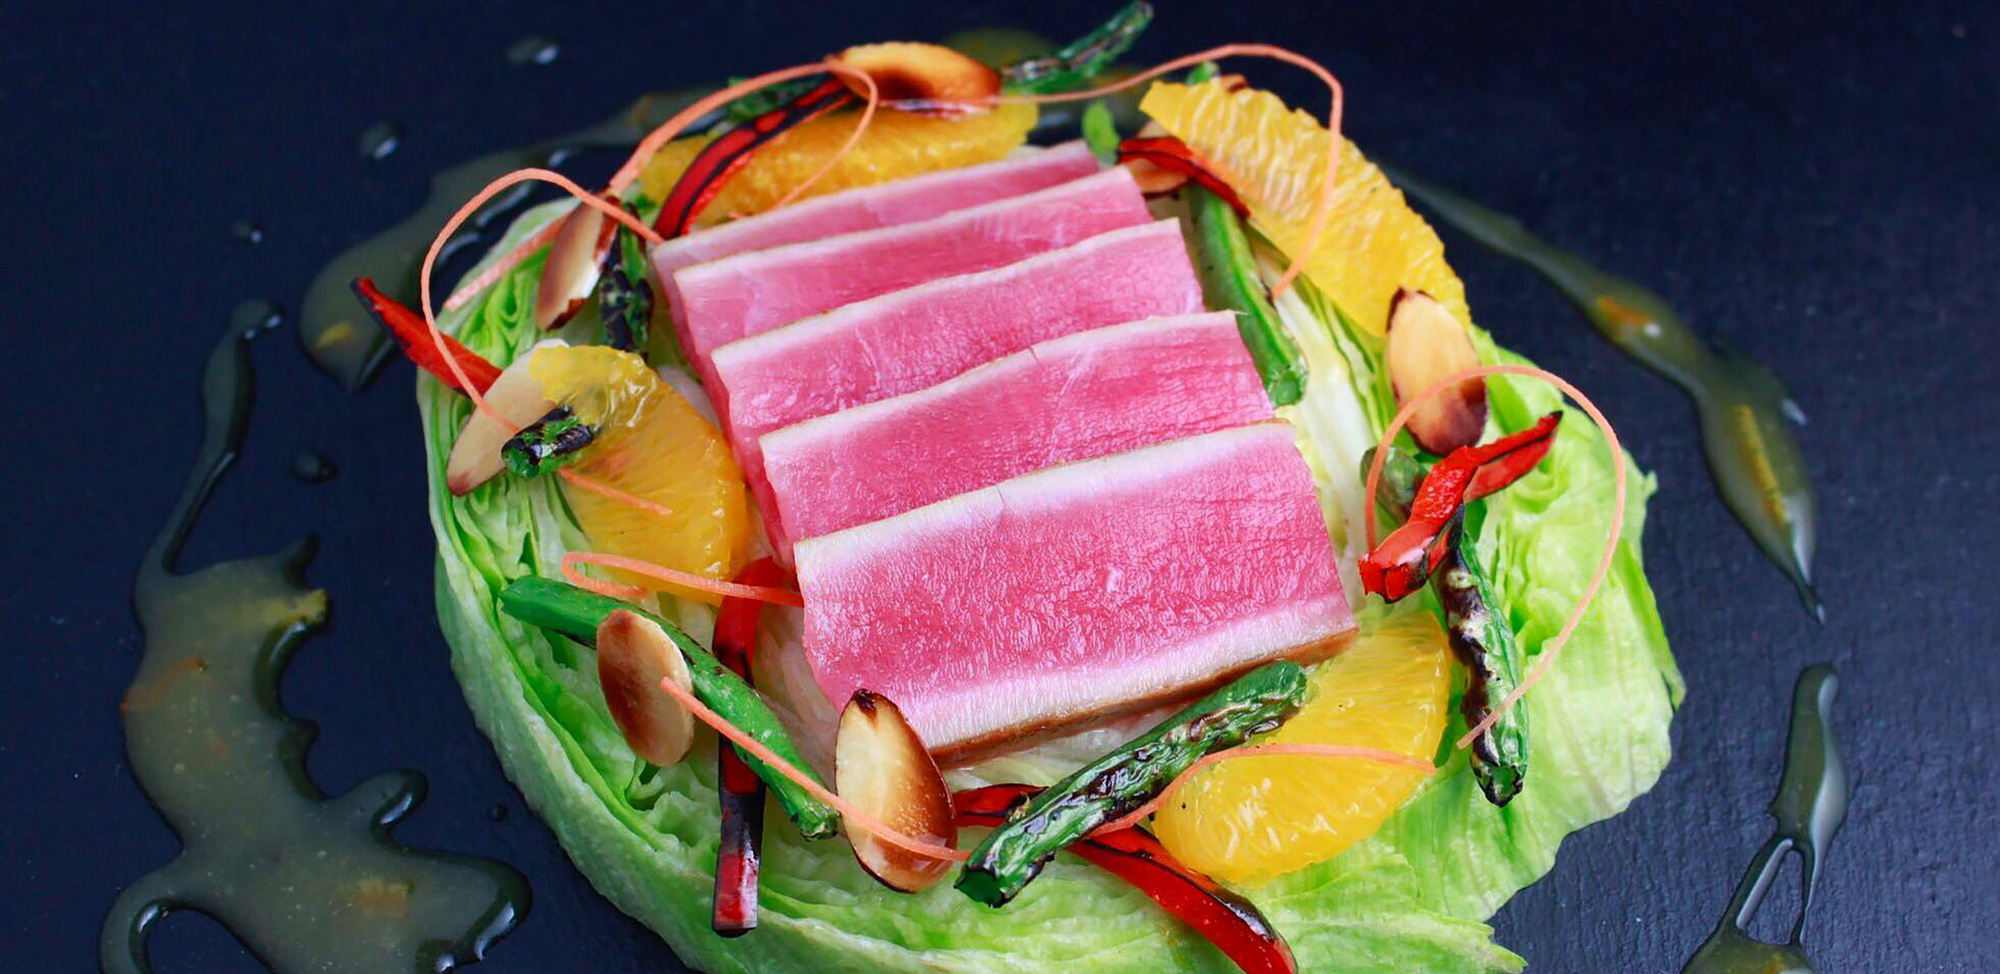 Seared Ahi tuna salad with Haliburton fire roasted red & green bell peppers and orange citrus vinaigrette